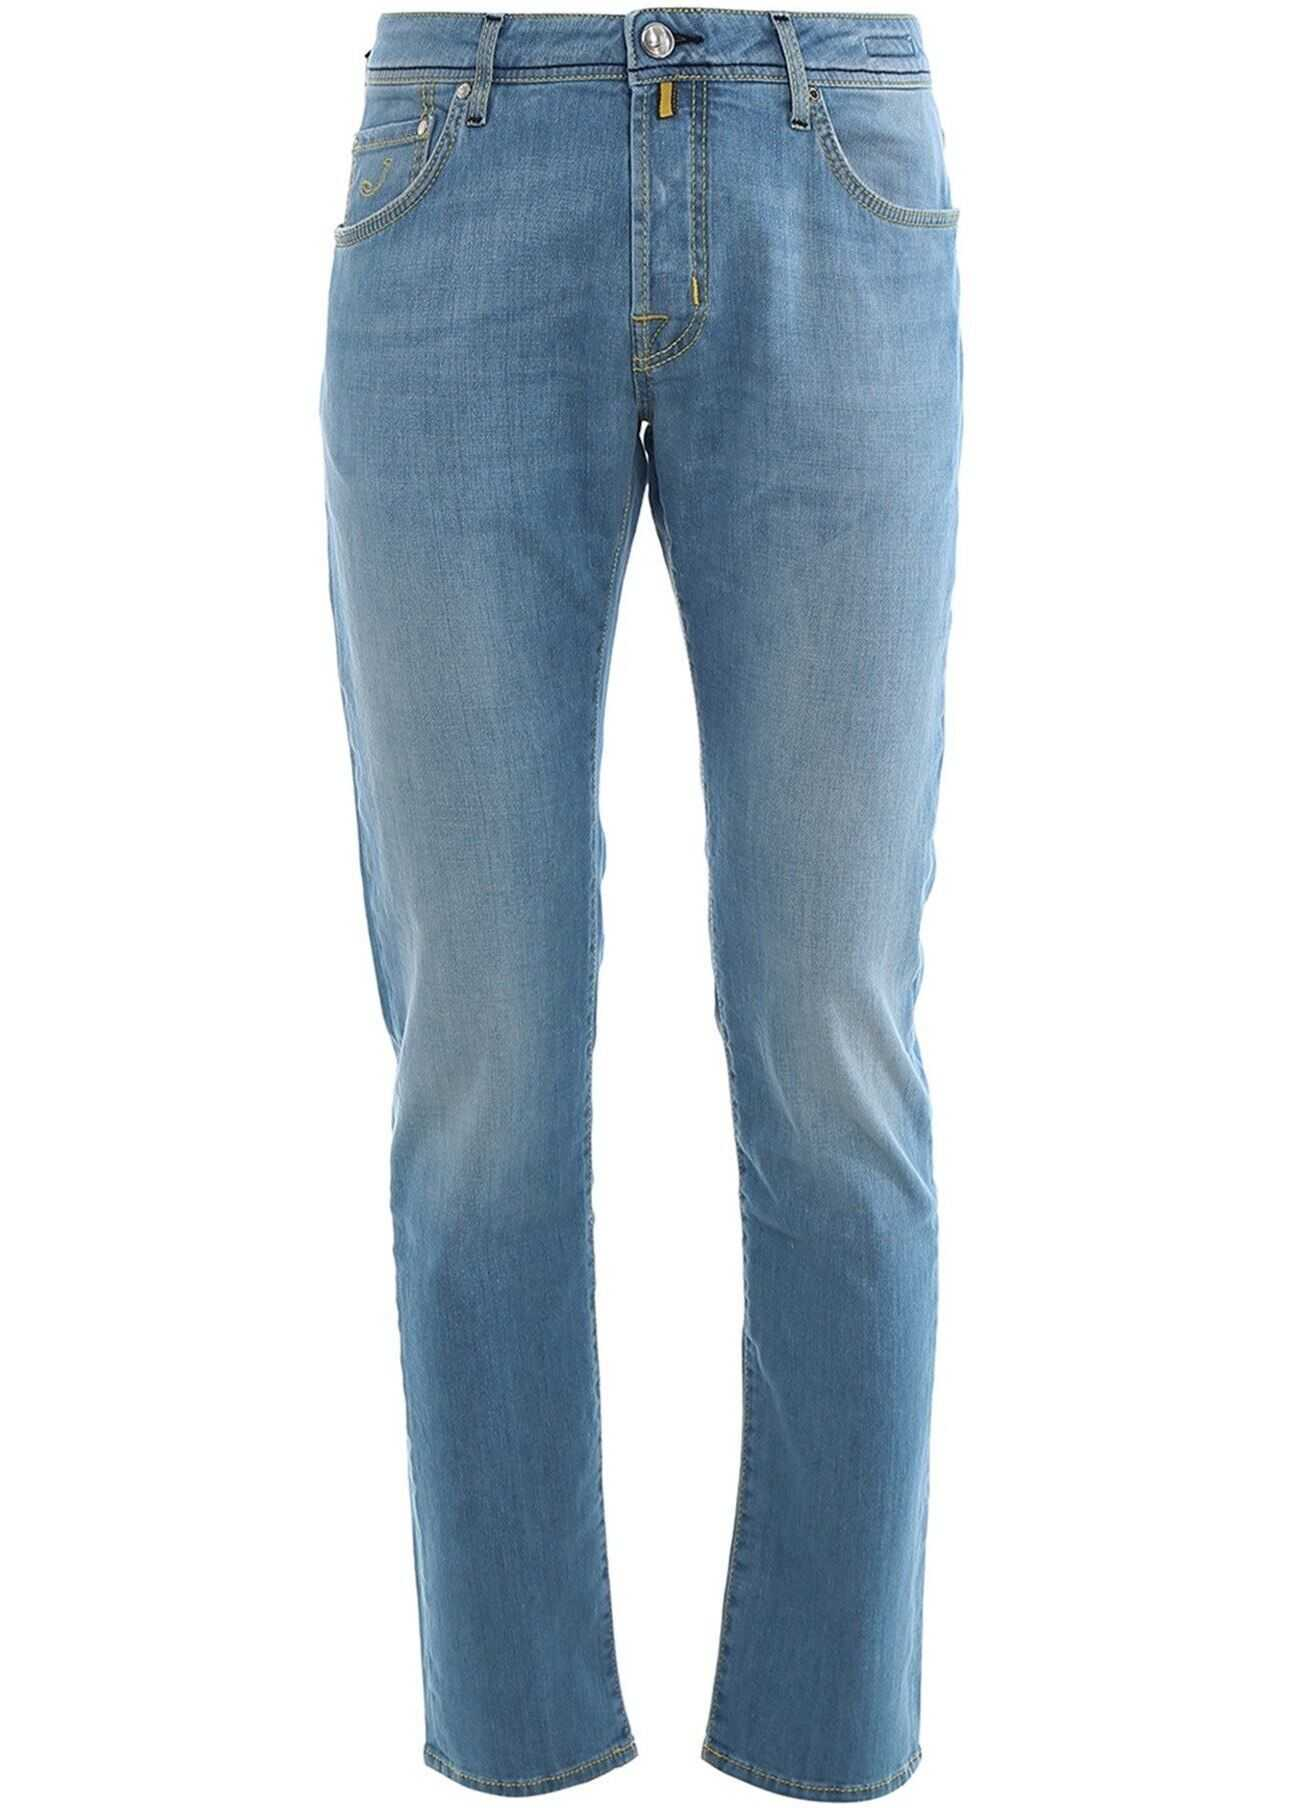 Jacob Cohen Faded Effect Denim Jeans In Light Blue Light Blue imagine